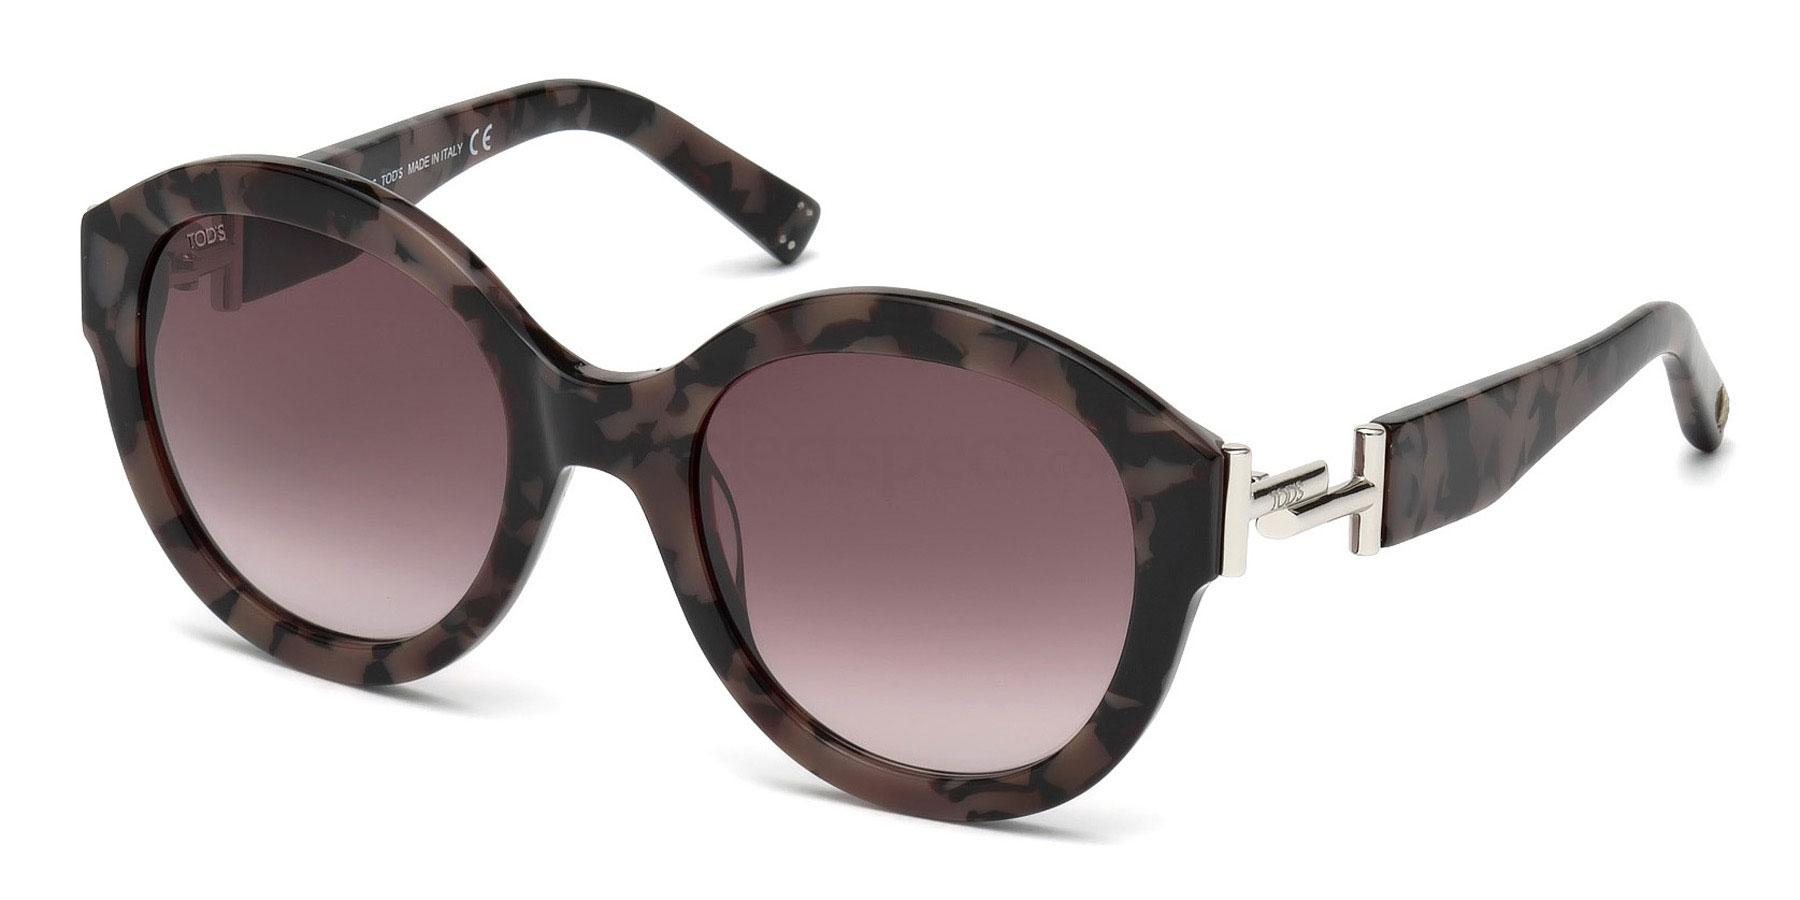 55T TO0208 Sunglasses, TODS